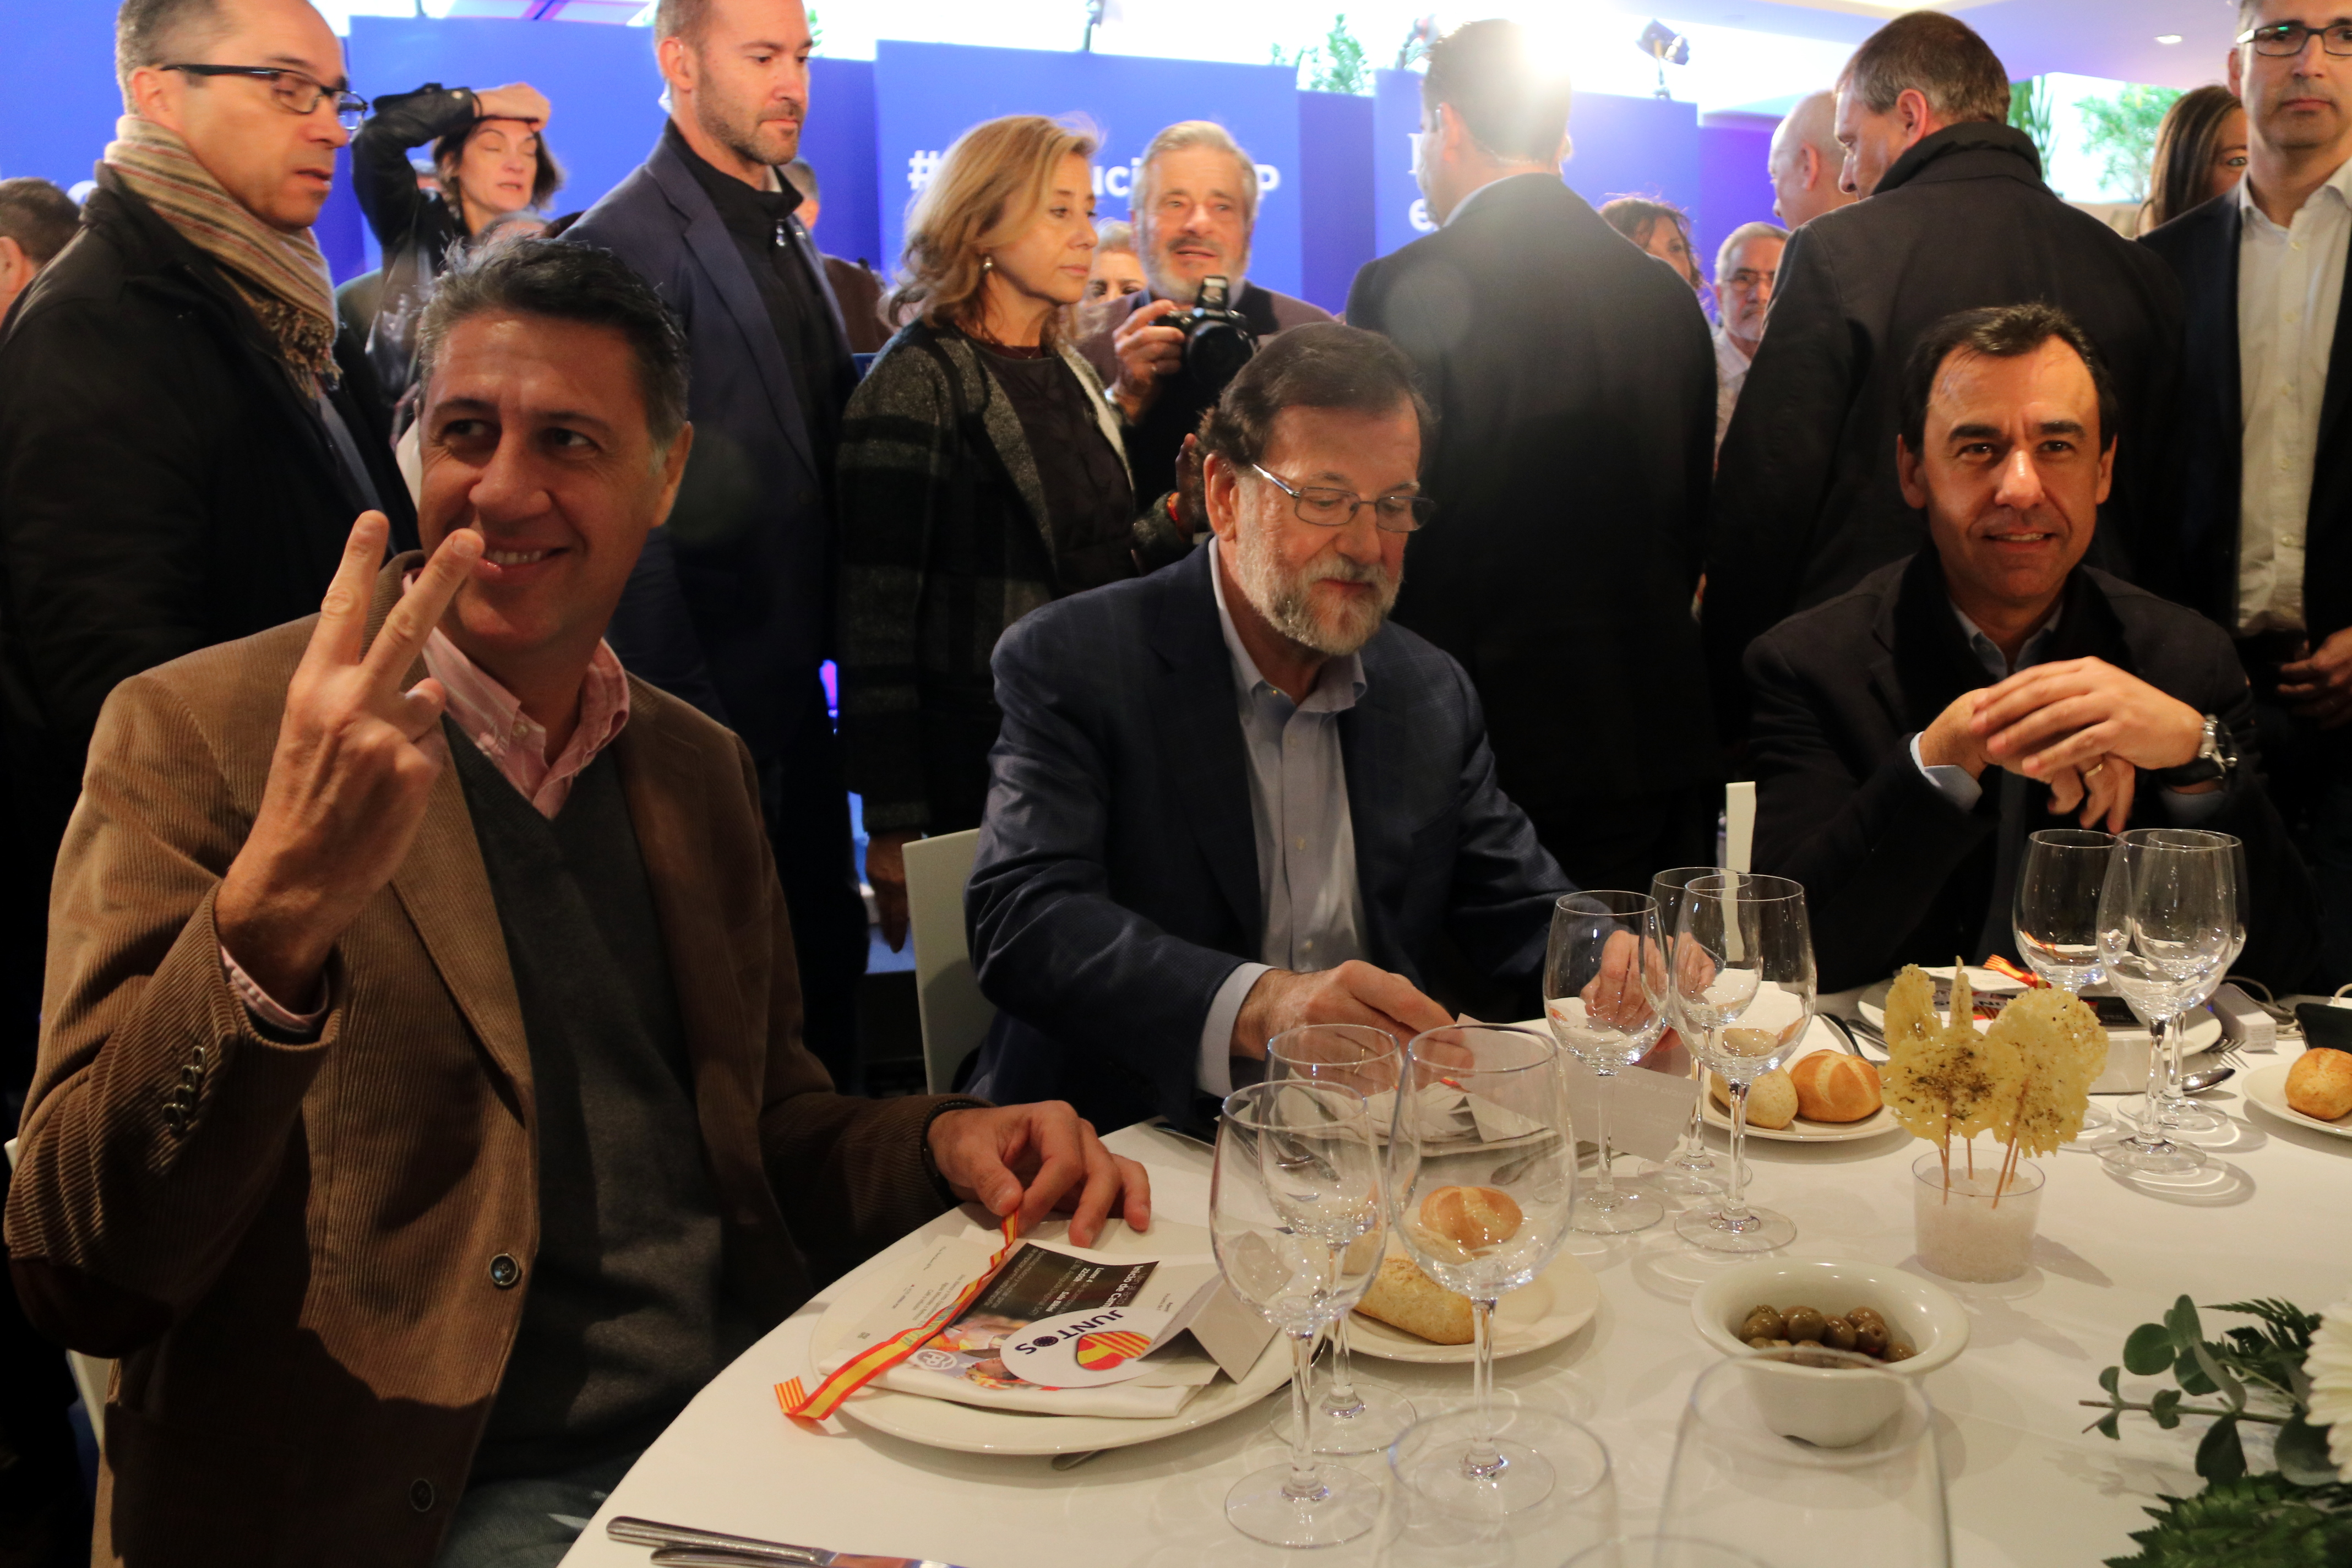 Spanish president Mariano Rajoy, head of PPC Xavier Garcia Albiol and Fernando Martínez Maíllo during PP's pre-campaign event in Mataró on December 2 2017 (by Àlex Recolons)